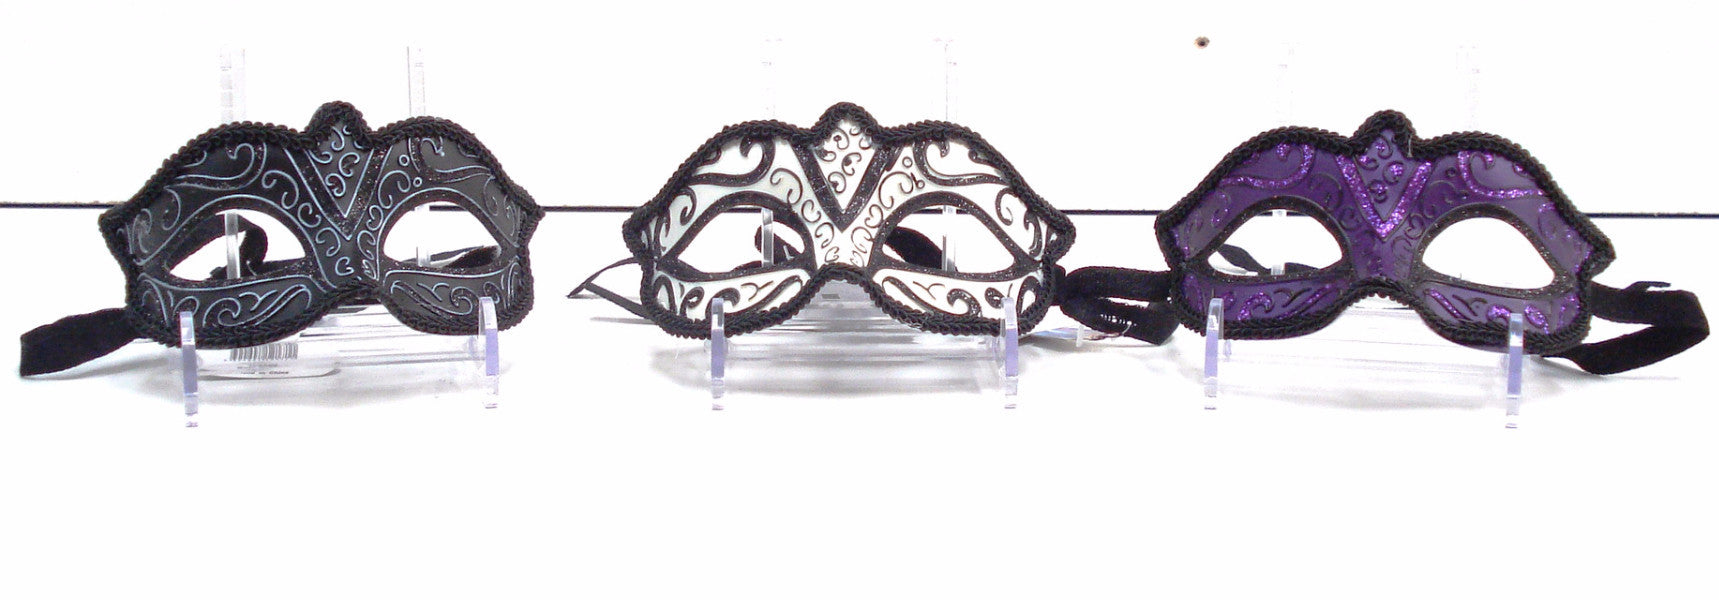 MK75 - Set of 3 Assorted Masks - Black/White/Purple -CLEARANCE HALF PRICE OFF ORIGINAL PRICE BELOW PER SET